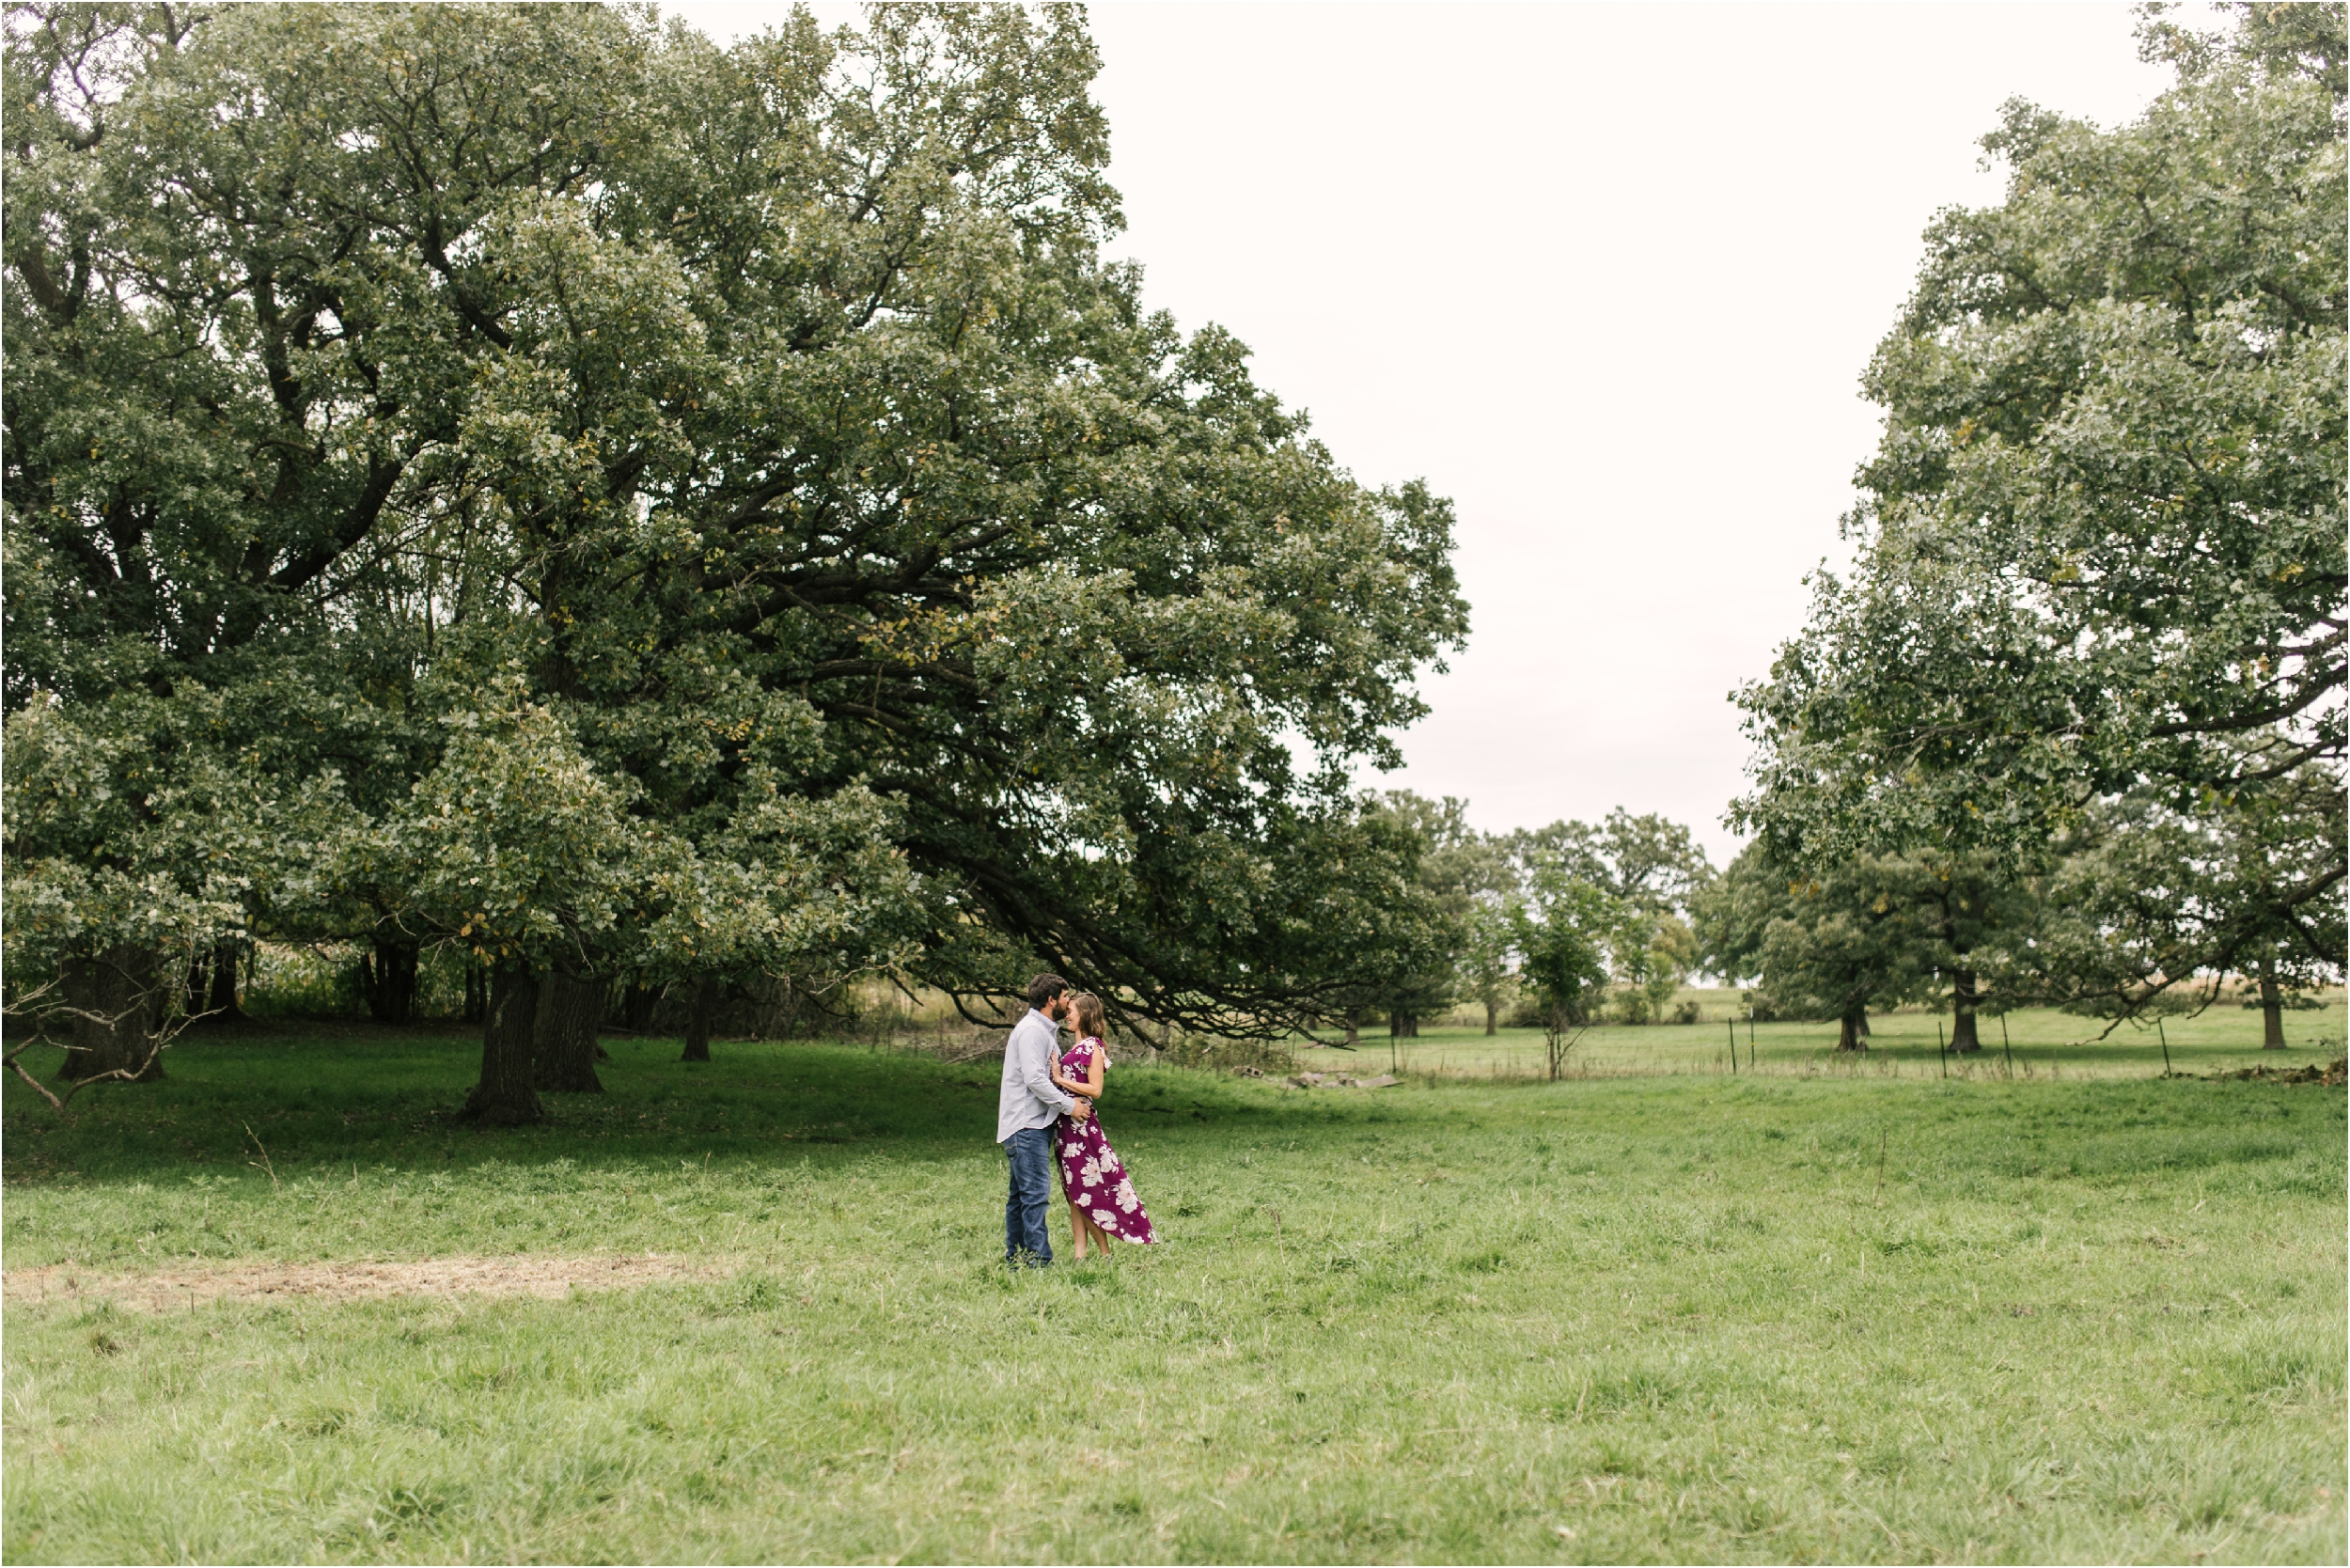 Countryside Engagement Photos_ Minnesota Wedding Photographer_Stephanie Lynn Photography_0051.jpg